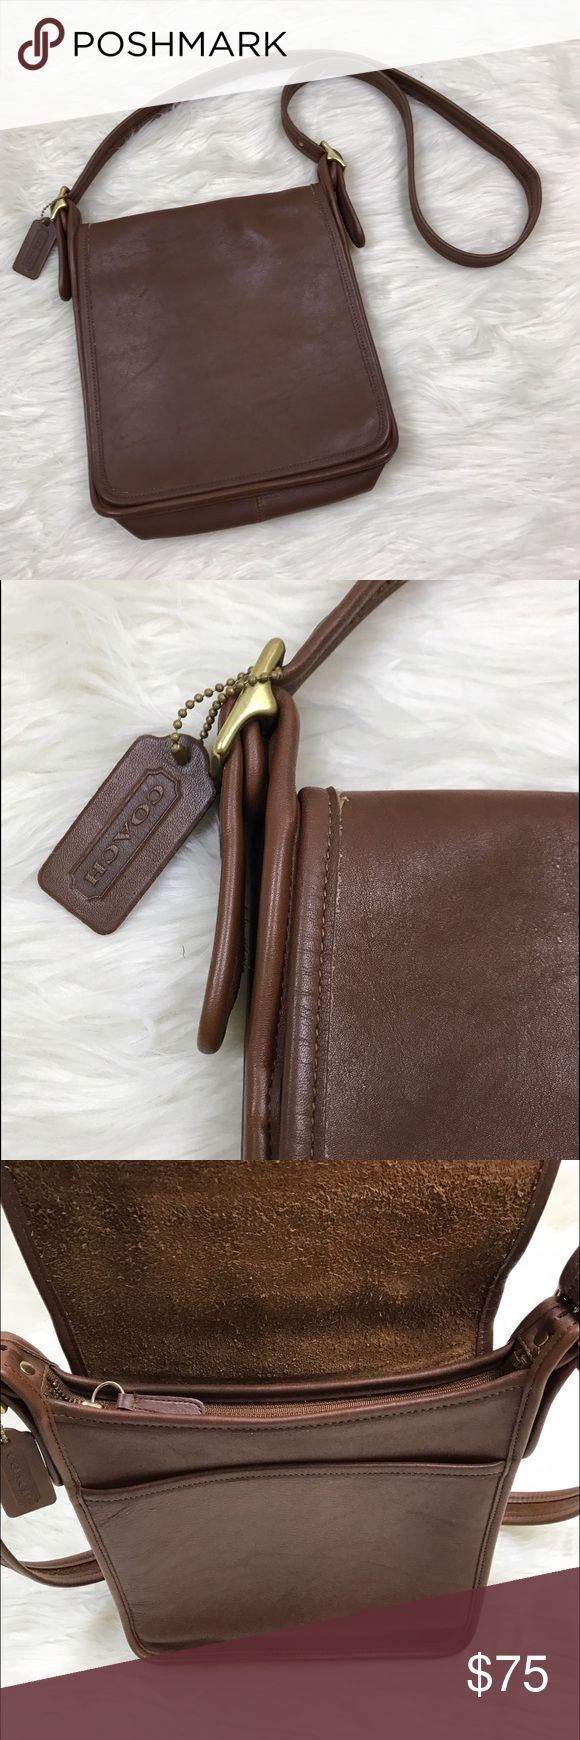 "[Vintage] Coach Legacy Flap Leather Crossbody Bag Vintage COACH Legacy Studio Flap Bag. Style 9144. Rich brown leather. Flap top. Zip closure. Interior compartment with side zip pocket. Back slip pocket. Leather embossed logo hang tag. Made in USA.   Dimensions: 10"" L x 10"" H x 3"" D Strap Drop: 21"" Condition: Excellent vintage/pre-owned condition. Some light wear on bottom corners. Coach Bags Crossbody Bags"